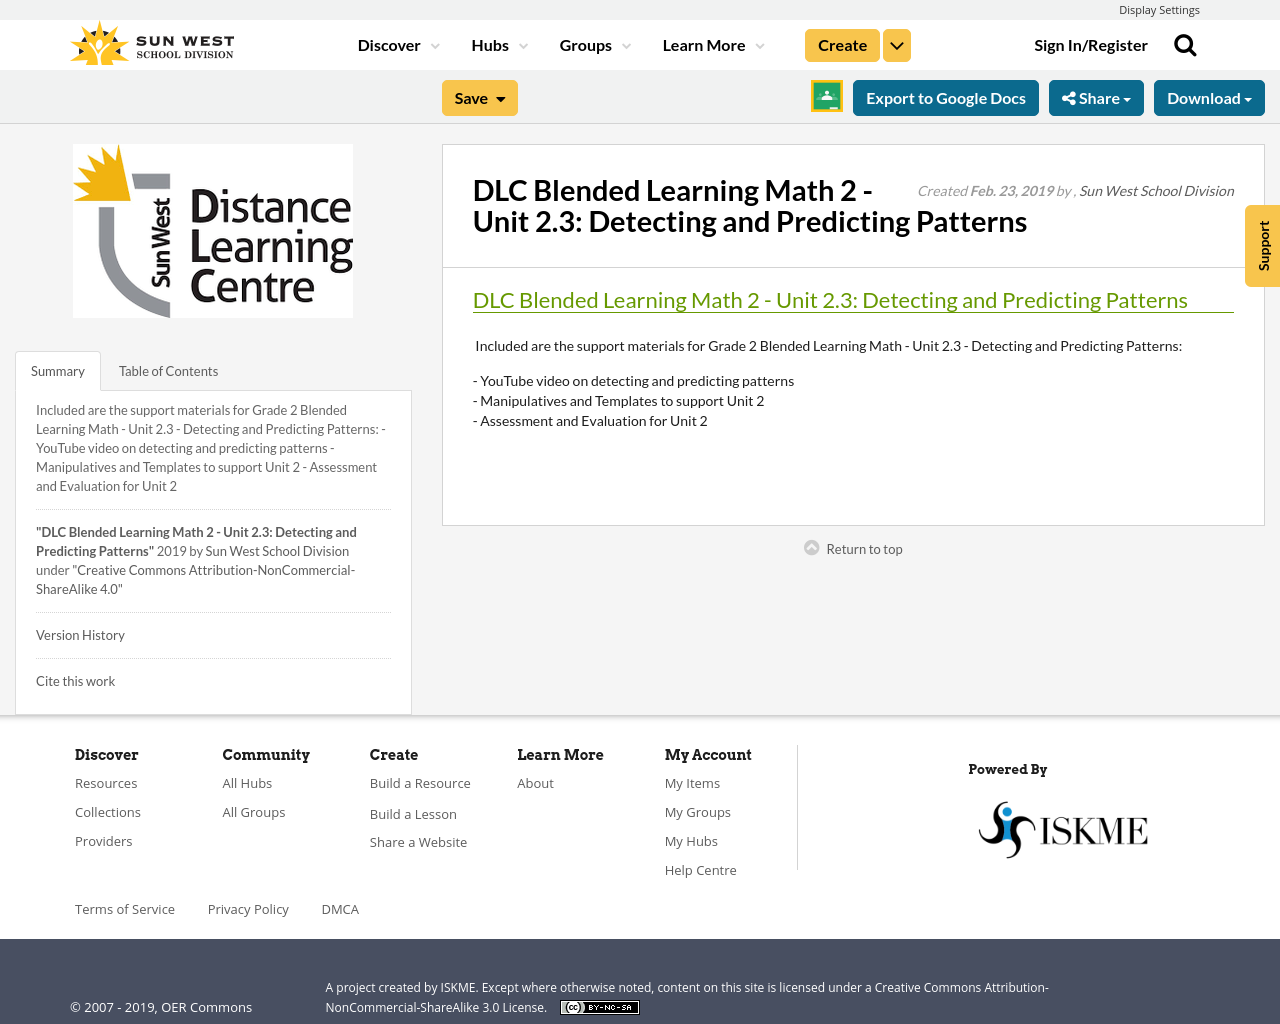 Dlc Blended Learning Math 2 Unit 2 3 Detecting And Predicting